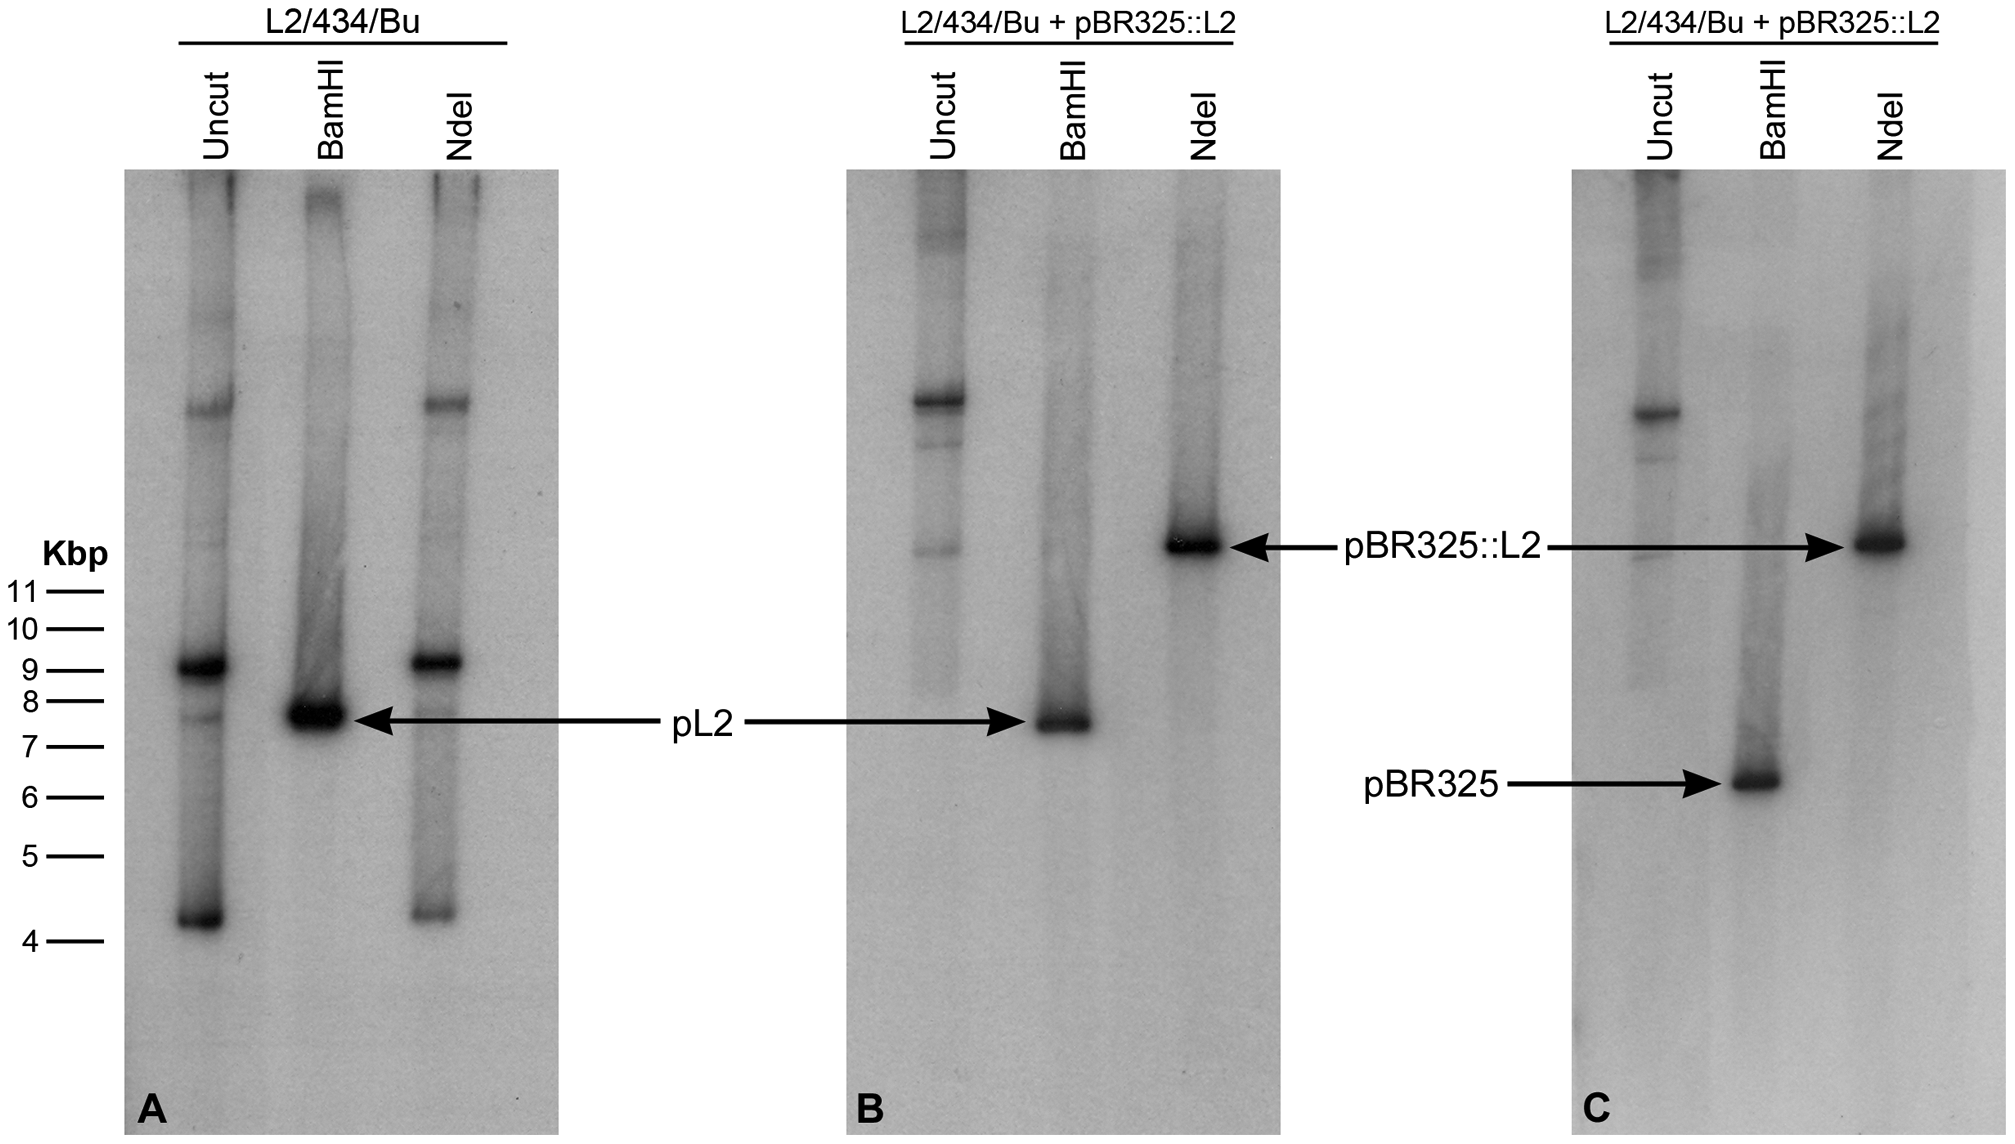 Southern blot of <i>C. trachomatis</i> L2/434/Bu transformed by plasmid pBR325::L2.